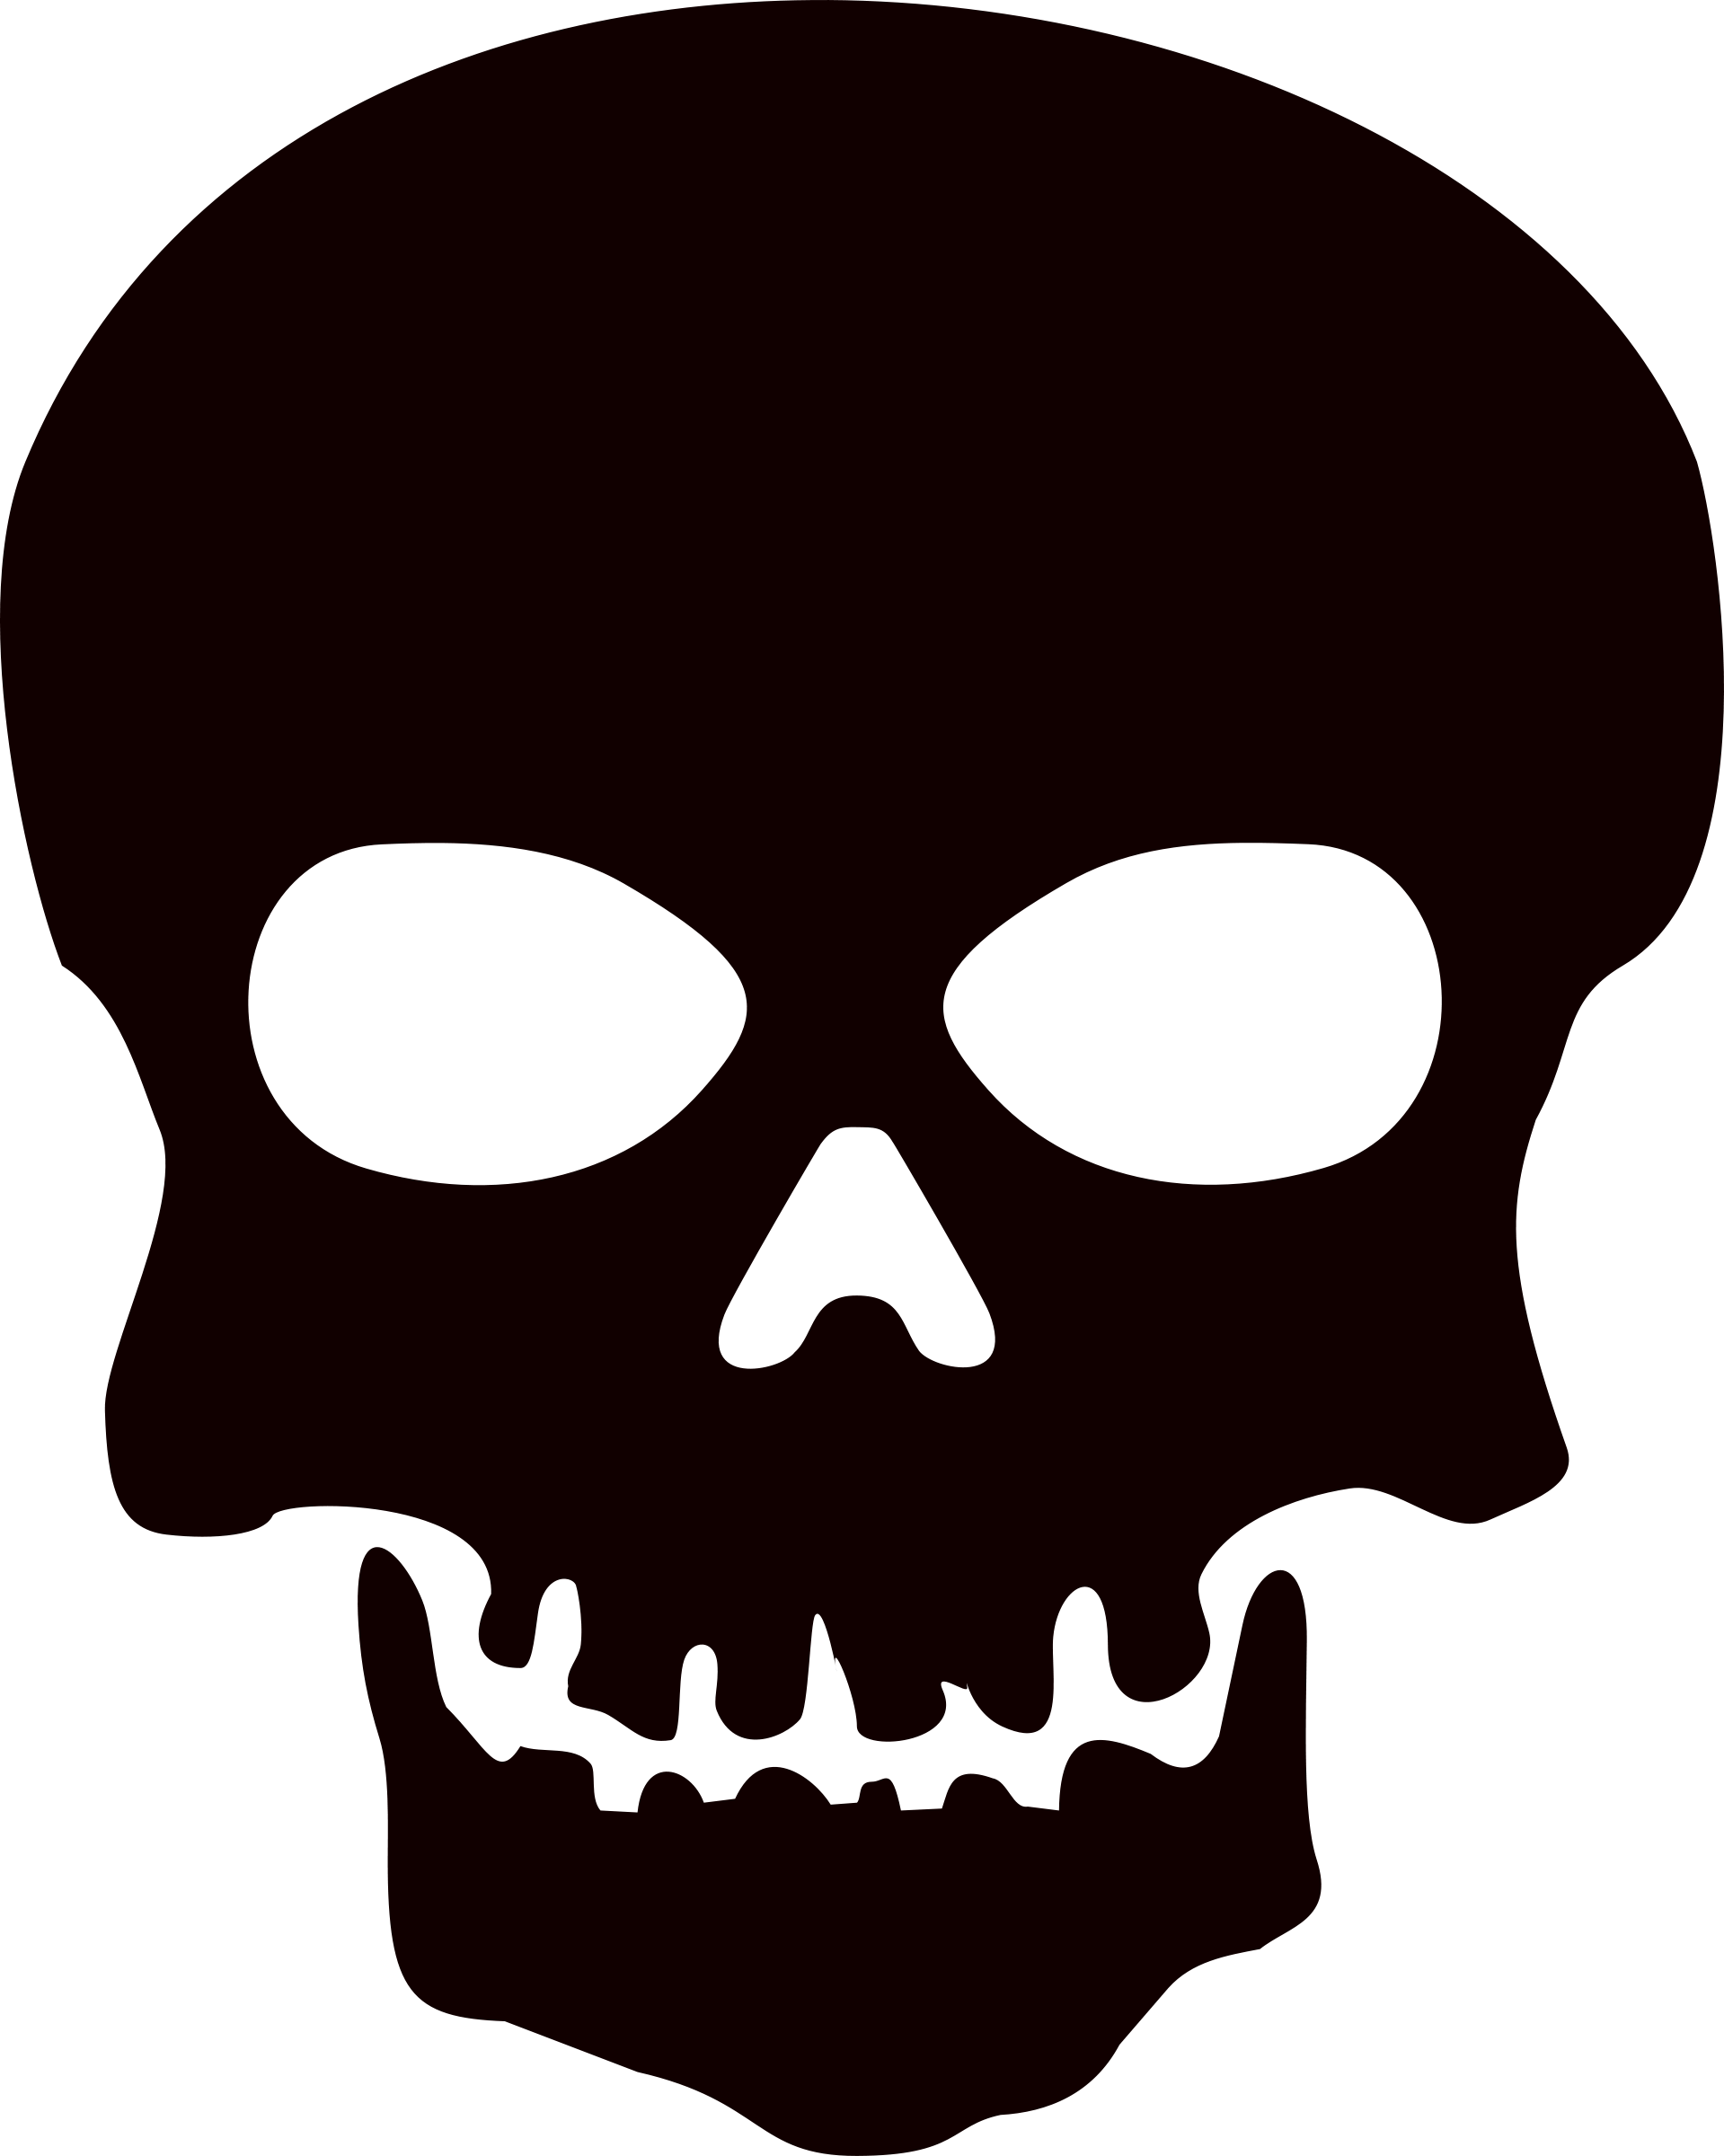 skull no jaw png